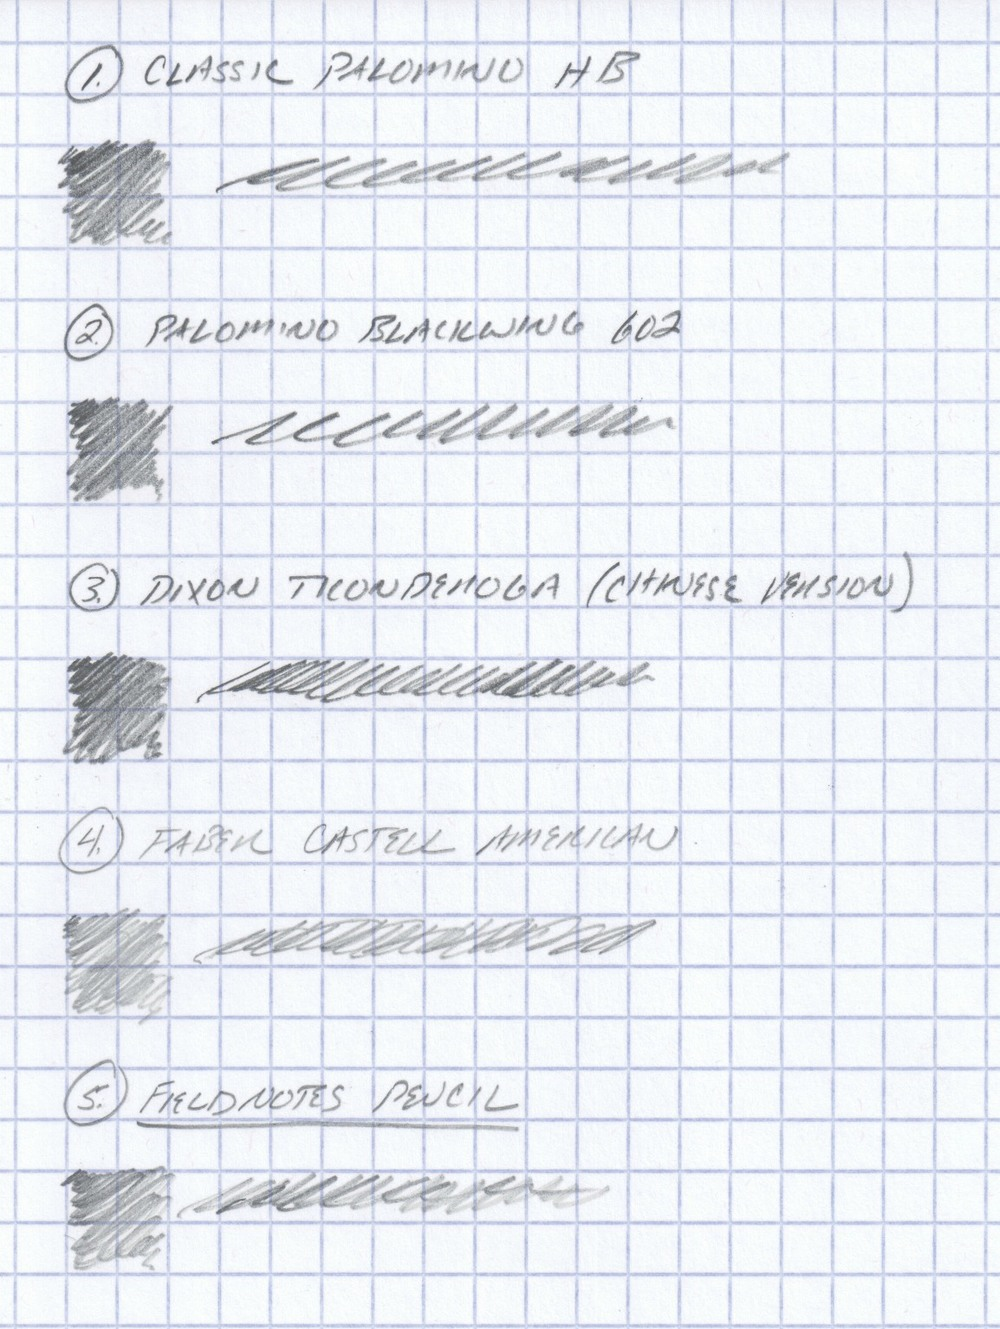 This is a pretty accurate depiction of the darkness of the lead.  In terms of darkness alone, I would rank them:  (1) Chinese Ticonderoga; (2) Palomino Blackwing 602; (3) Palomino HB; (4) Field Notes; (5) Faber Castell American.  In terms of smoothness, the rankings would be similar, thought the Palomino pencils would both trump the Chinese Ticonderoga, with the Blackwing 602 taking the prize.